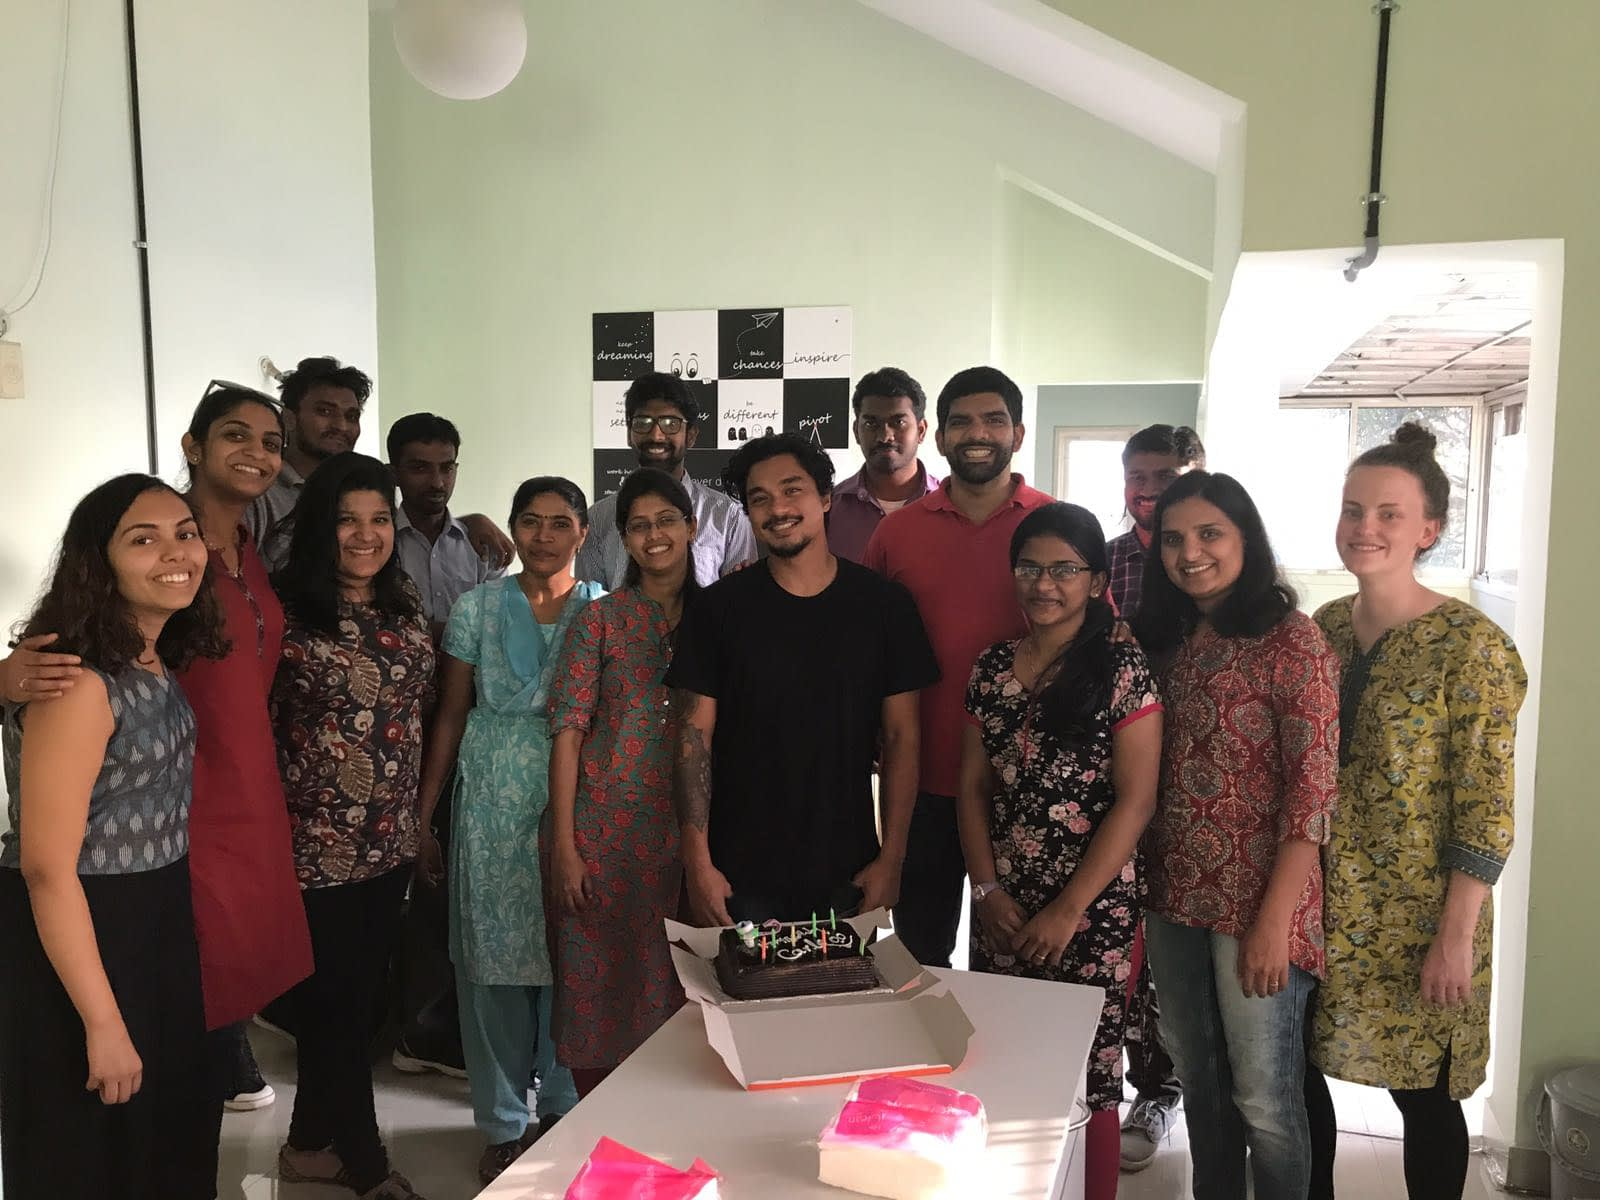 Carlo celebrated his birthday with the BEMPU team.